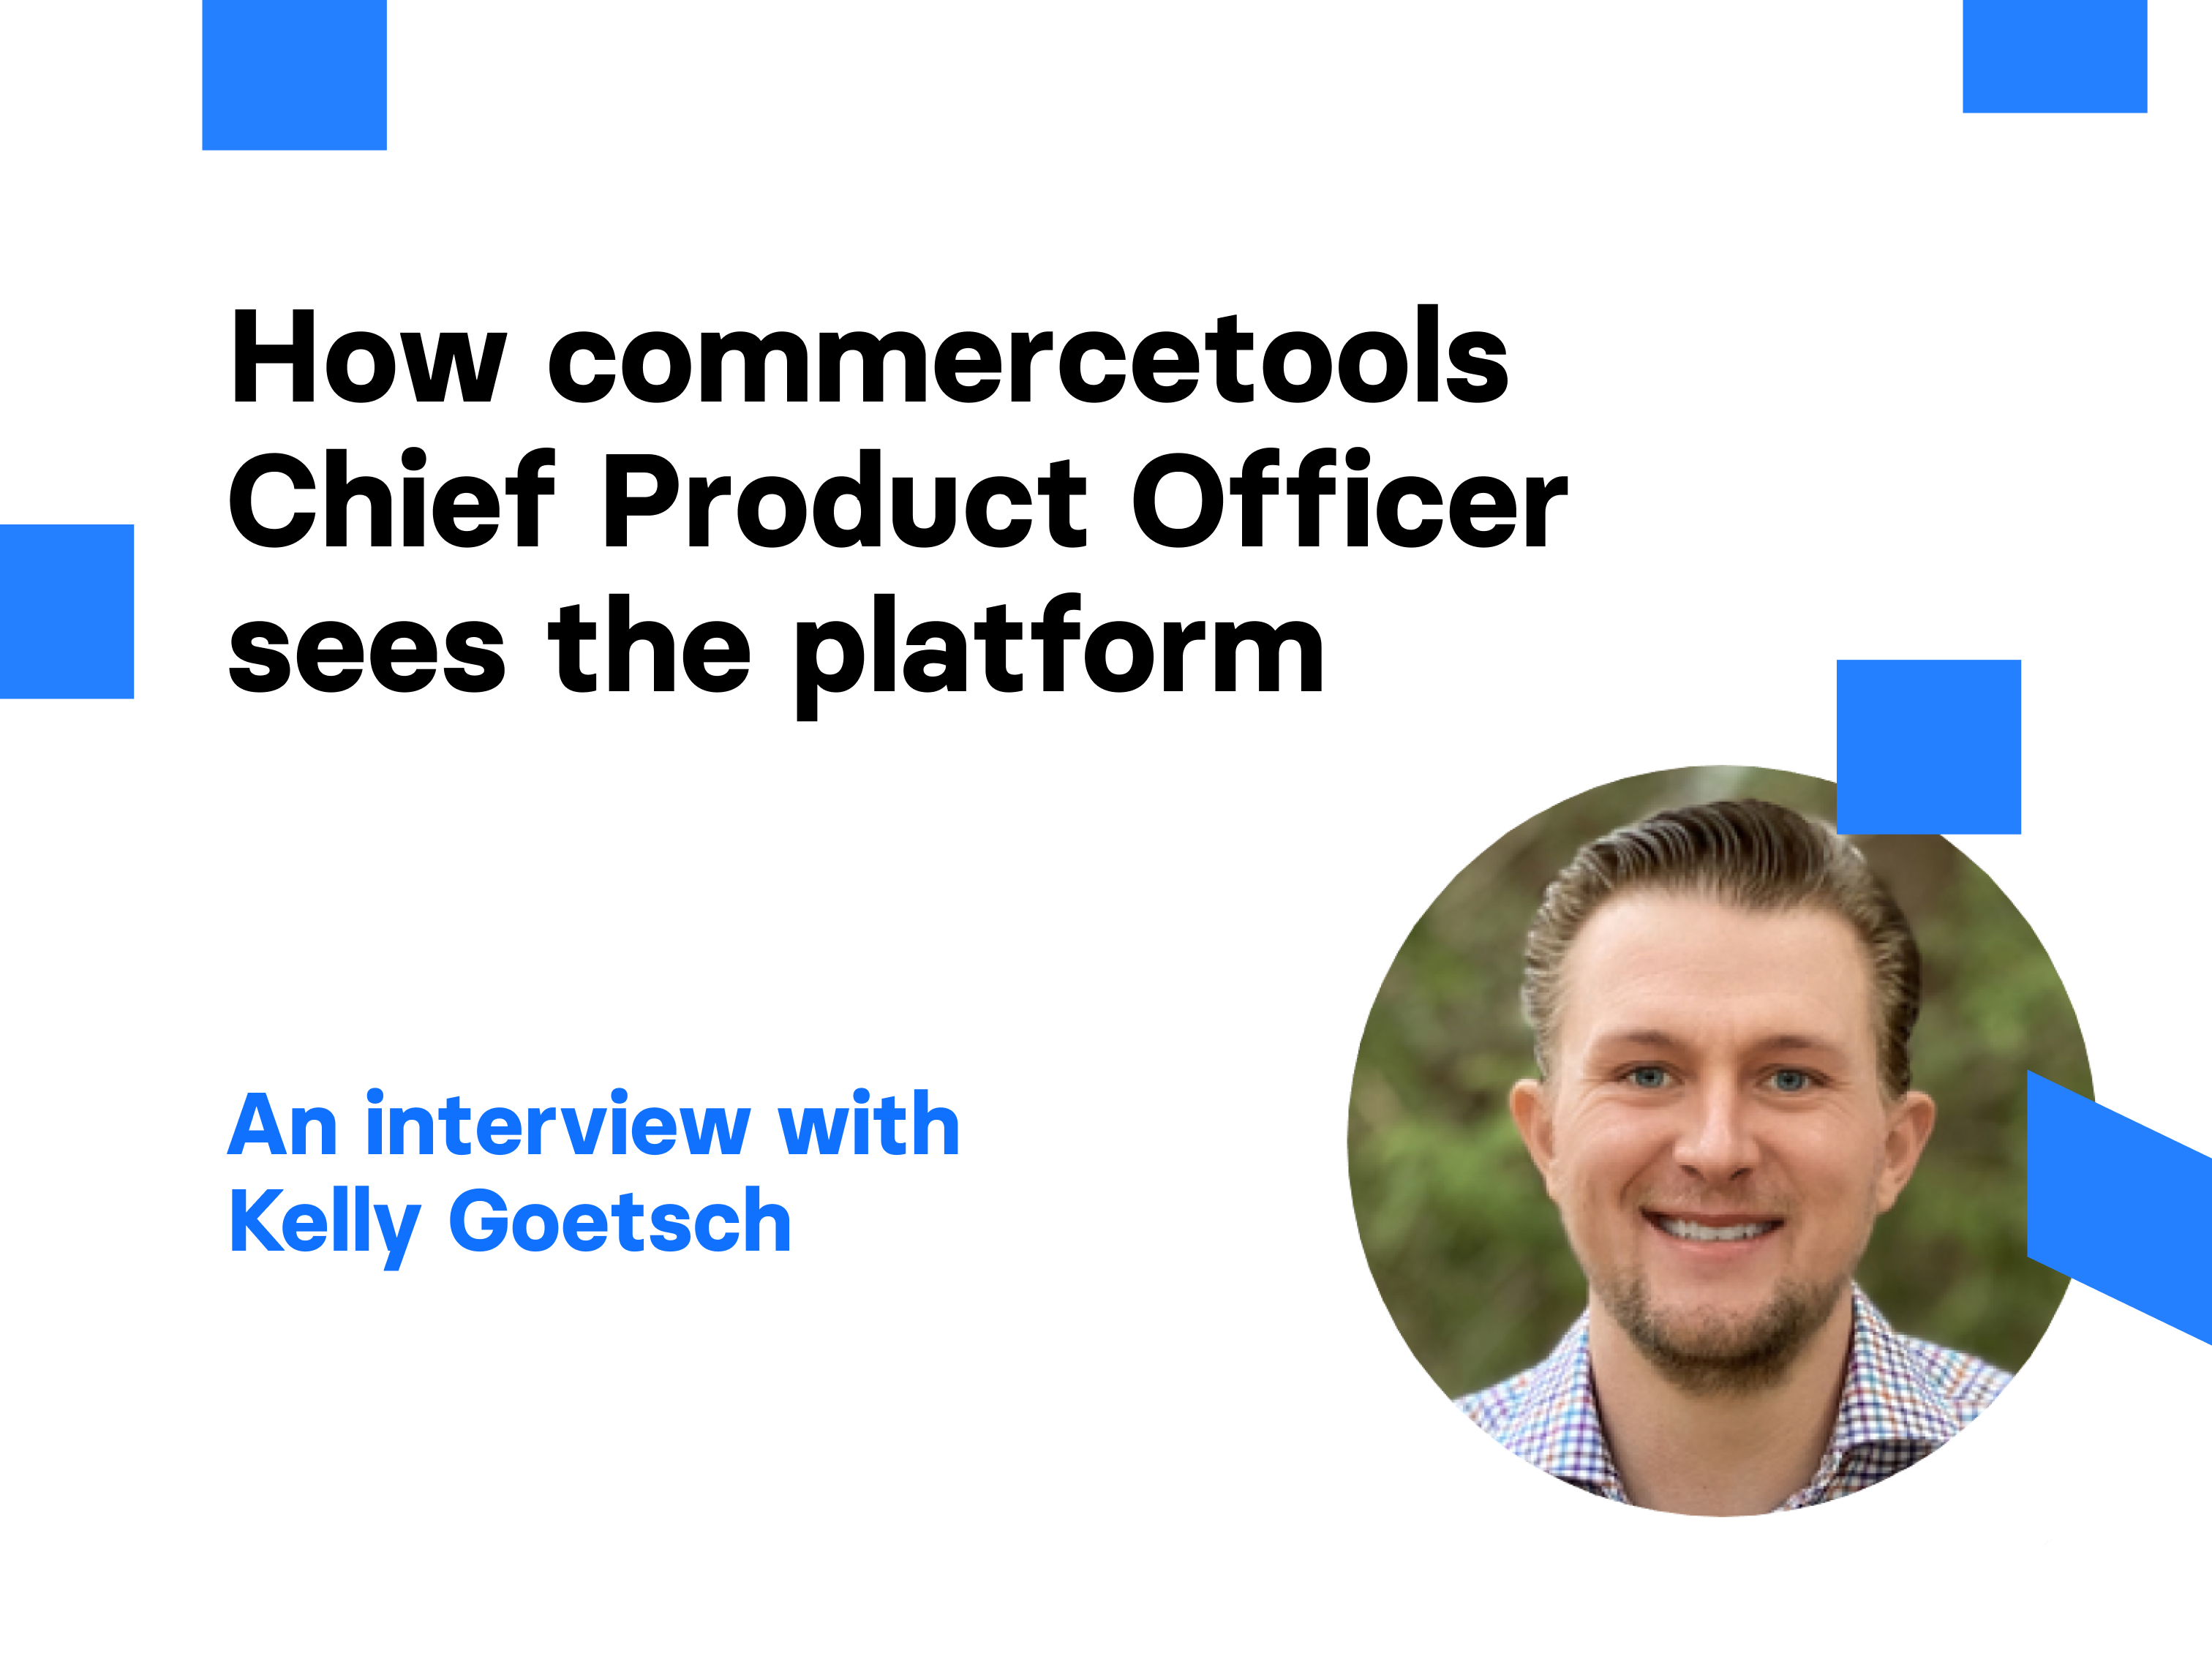 How commercetools Chief Product Officer sees the platform   Divante